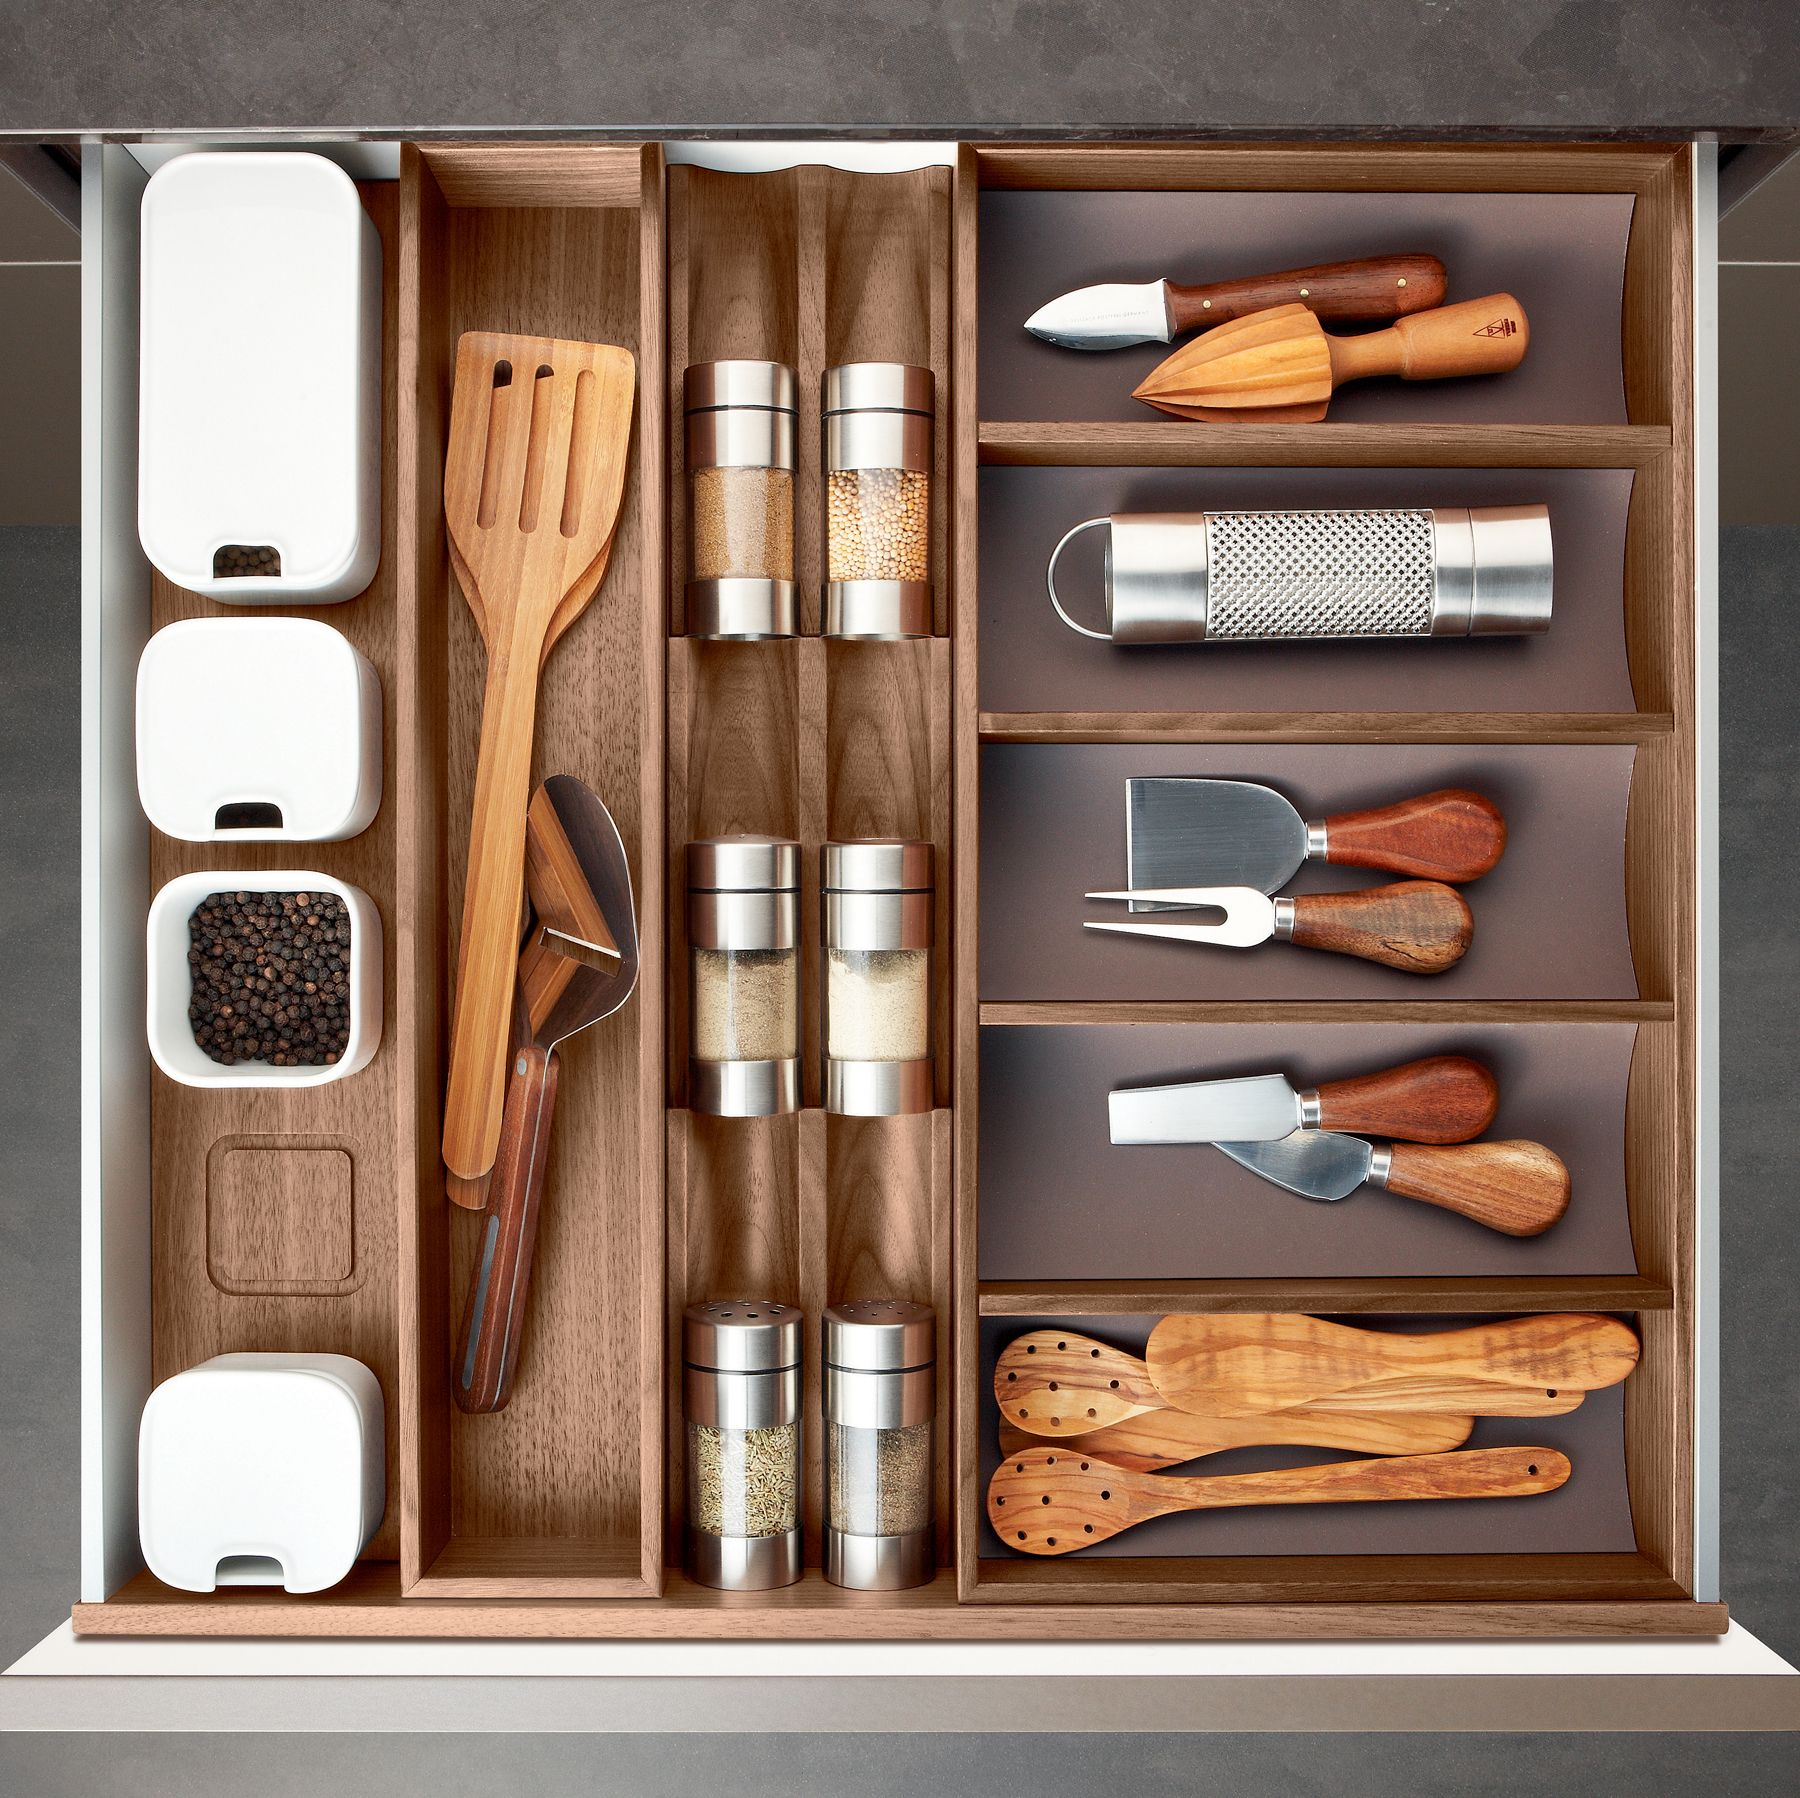 x drawer inserts knife insert in organizer for cabinet use drawers of best kitchen unique